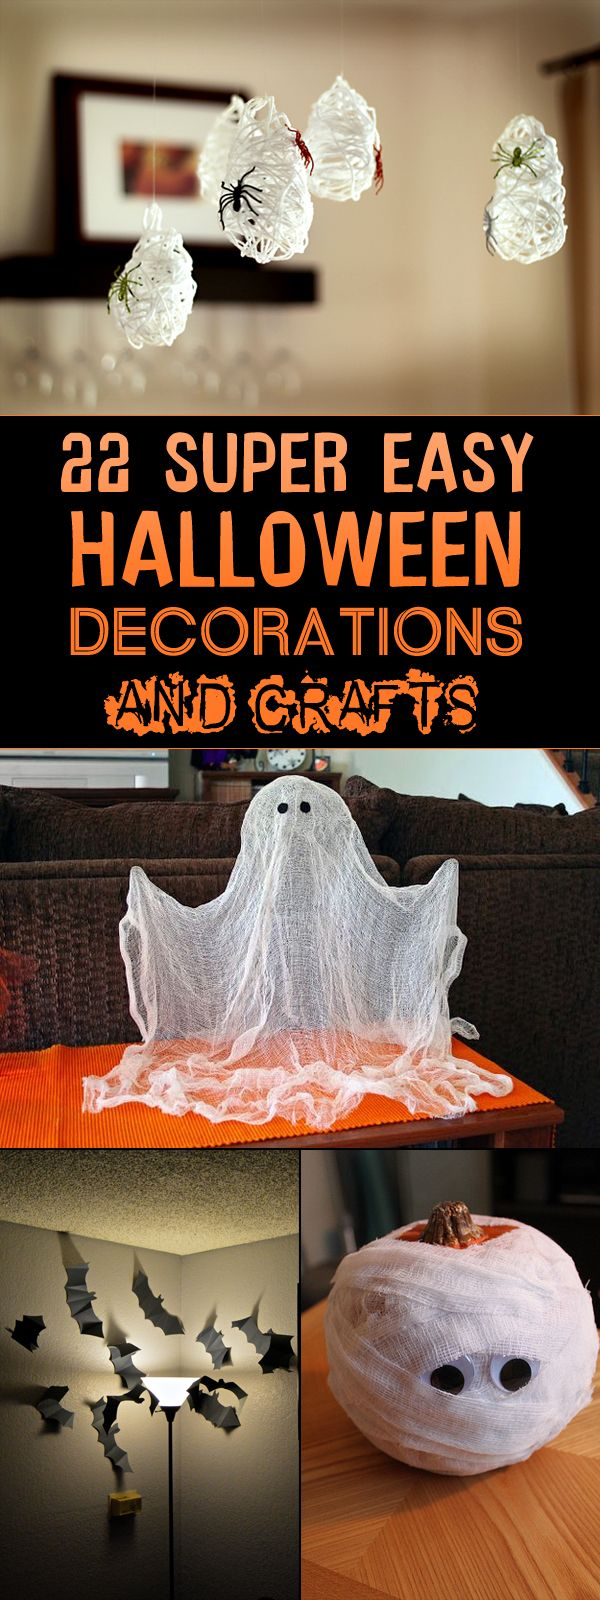 29 best Best Halloween Ideas images on Pinterest Halloween - Homemade Halloween Decorations